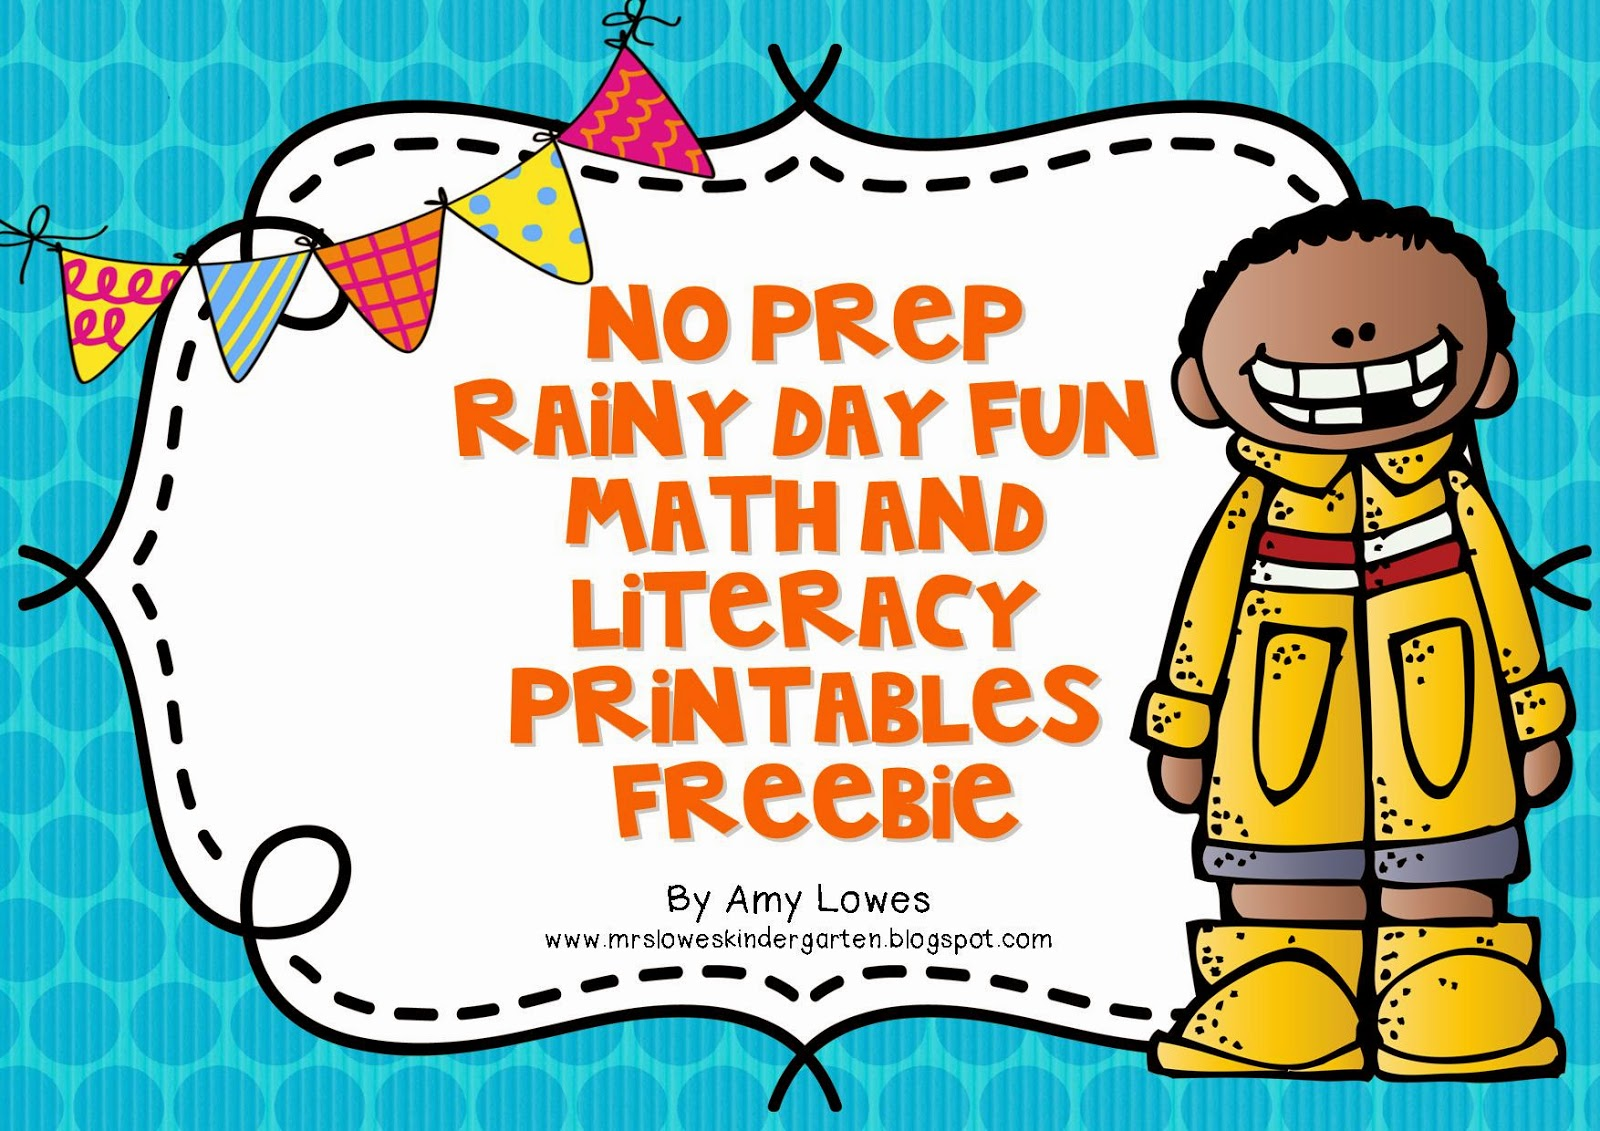 http://www.teacherspayteachers.com/Product/No-Prep-Rainy-Day-Fun-Math-and-Literacy-Printables-FREEBIE-1176746